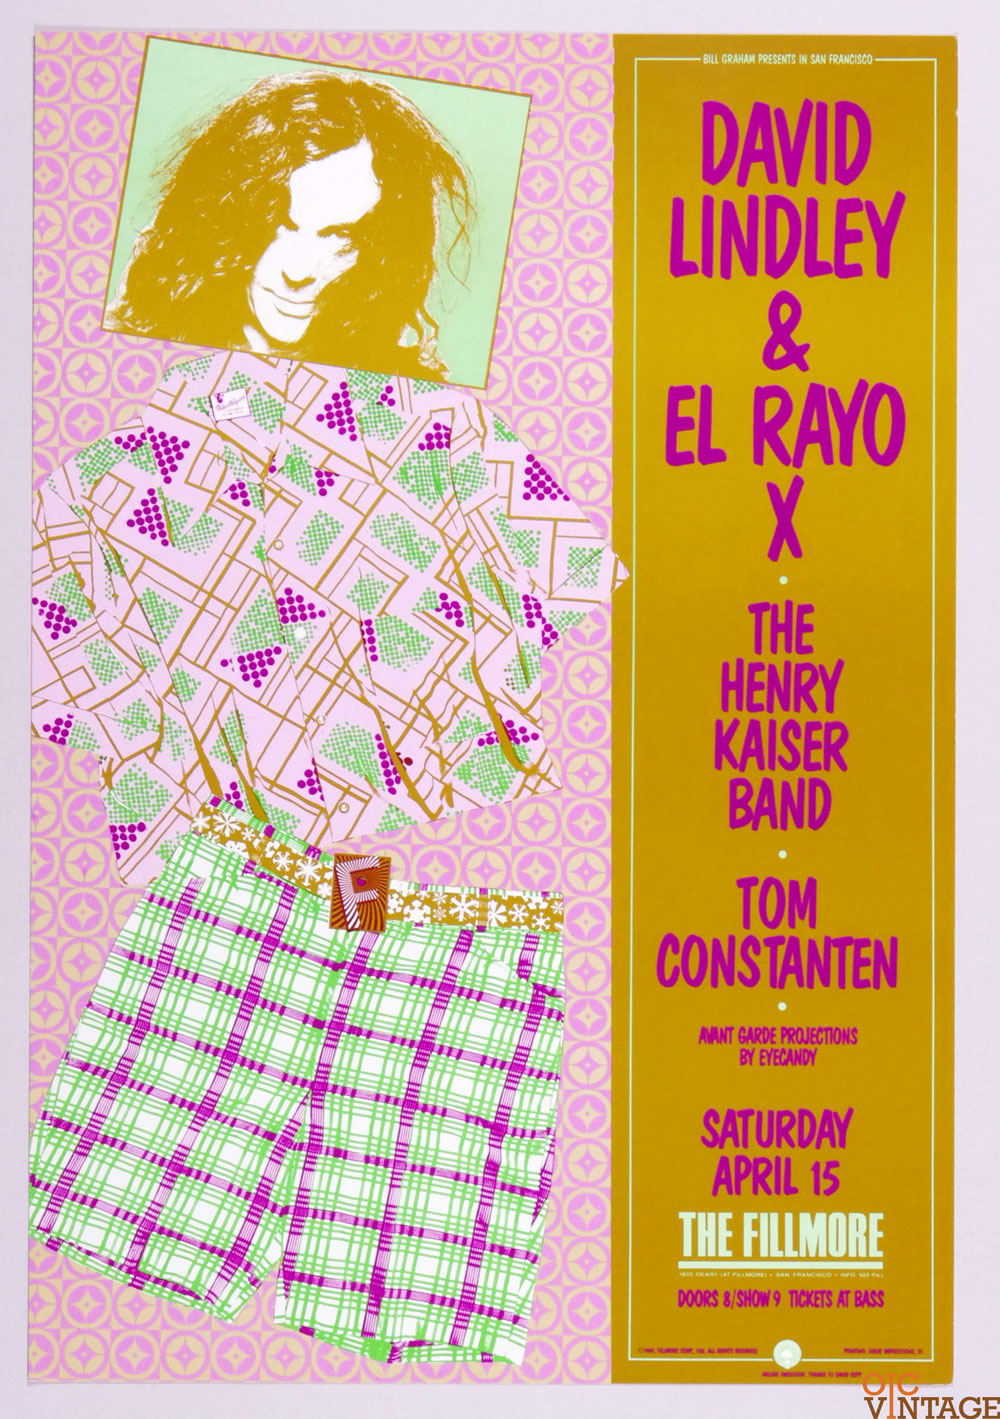 David Lindley El Rayo X Henry Kaiser band Poster 1989 Apr 15 New Fillmore